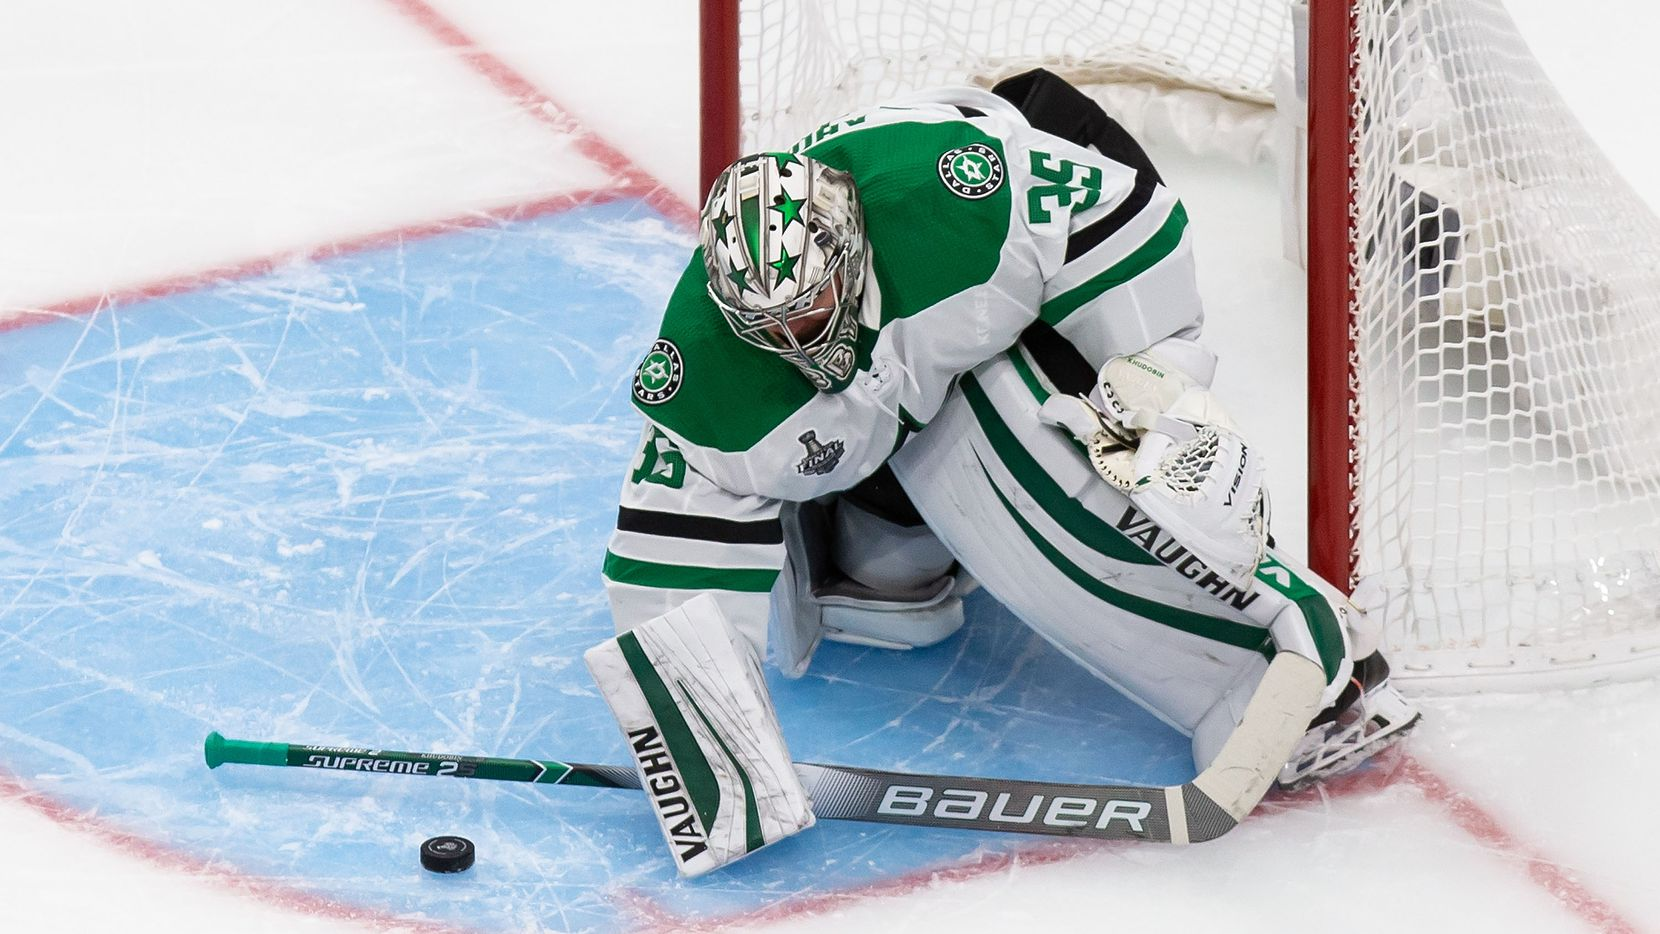 Goaltender Anton Khudobin (35) of the Dallas Stars makes a save against the Tampa Bay Lightning during Game Five of the Stanley Cup Final at Rogers Place in Edmonton, Alberta, Canada on Saturday, September 26, 2020.